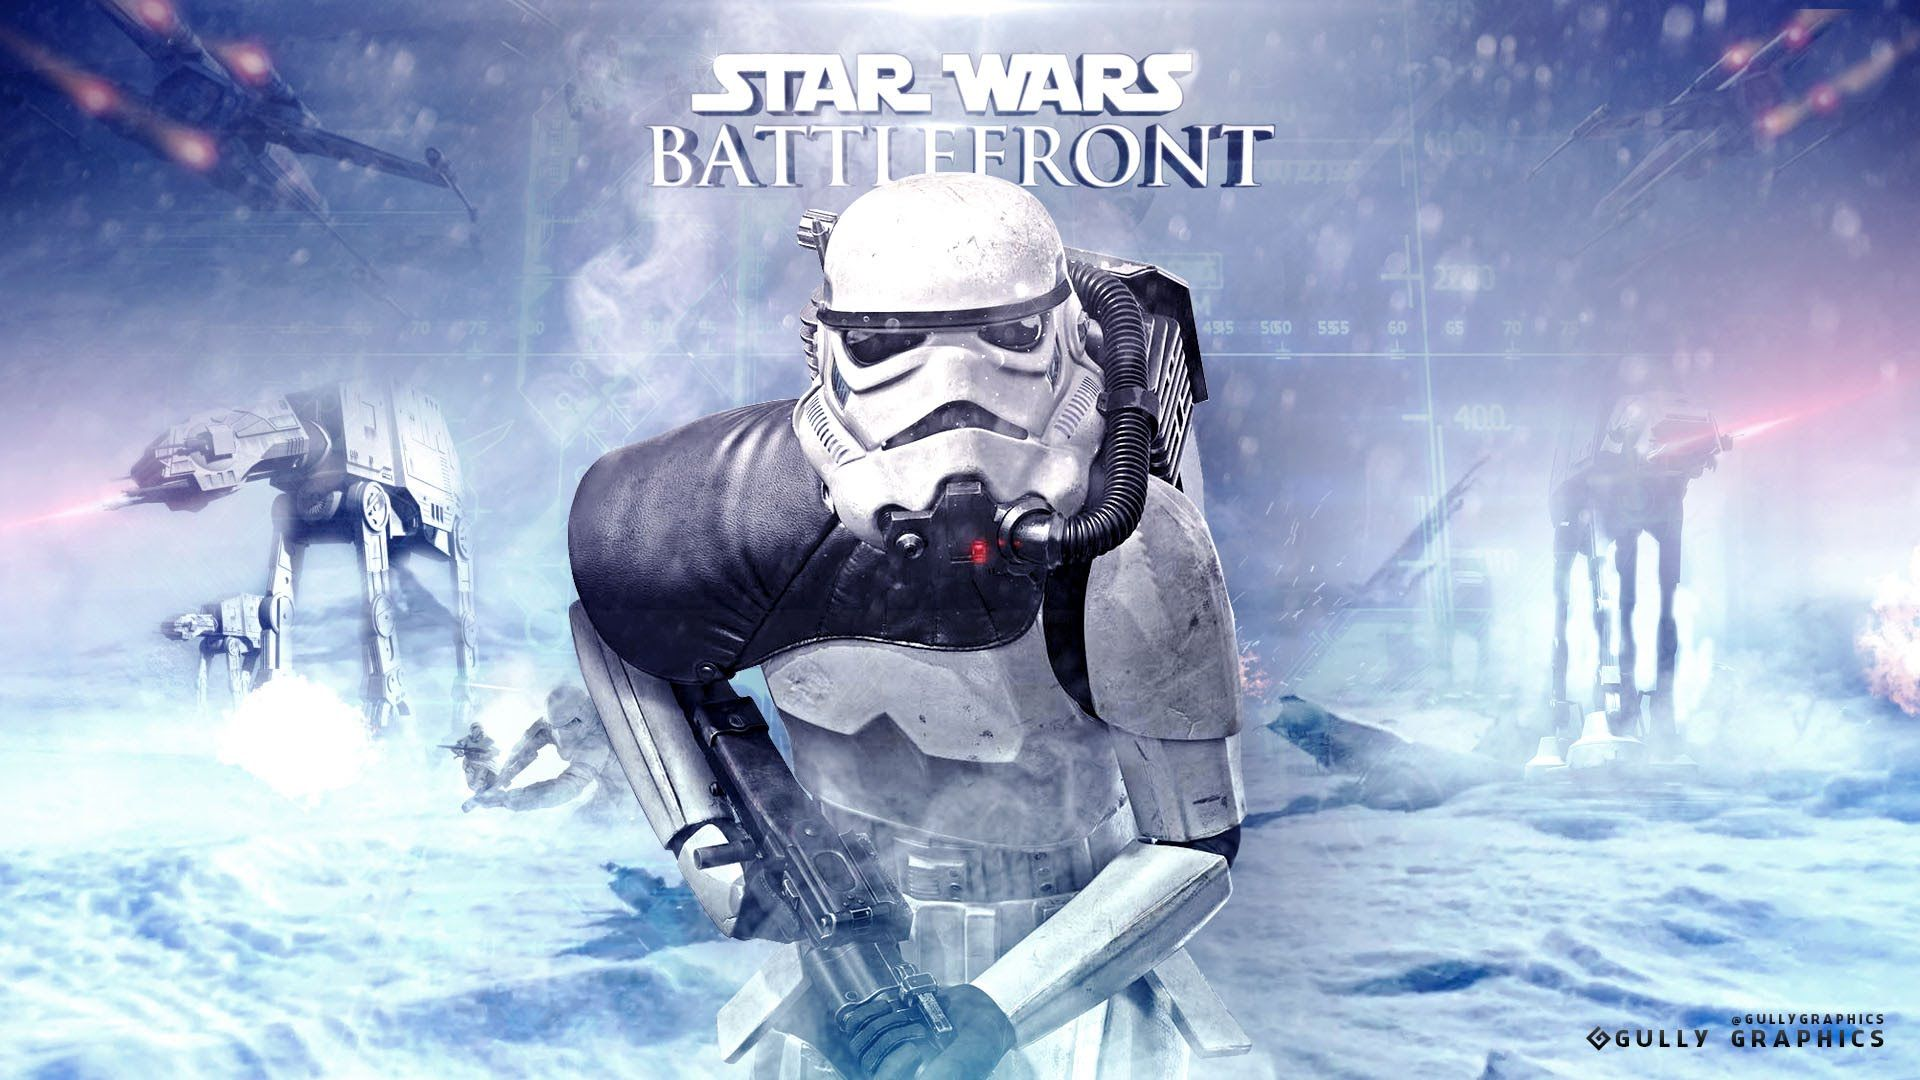 Star Wars Battlefront Wallpapers Top Free Star Wars Battlefront Backgrounds Wallpaperaccess